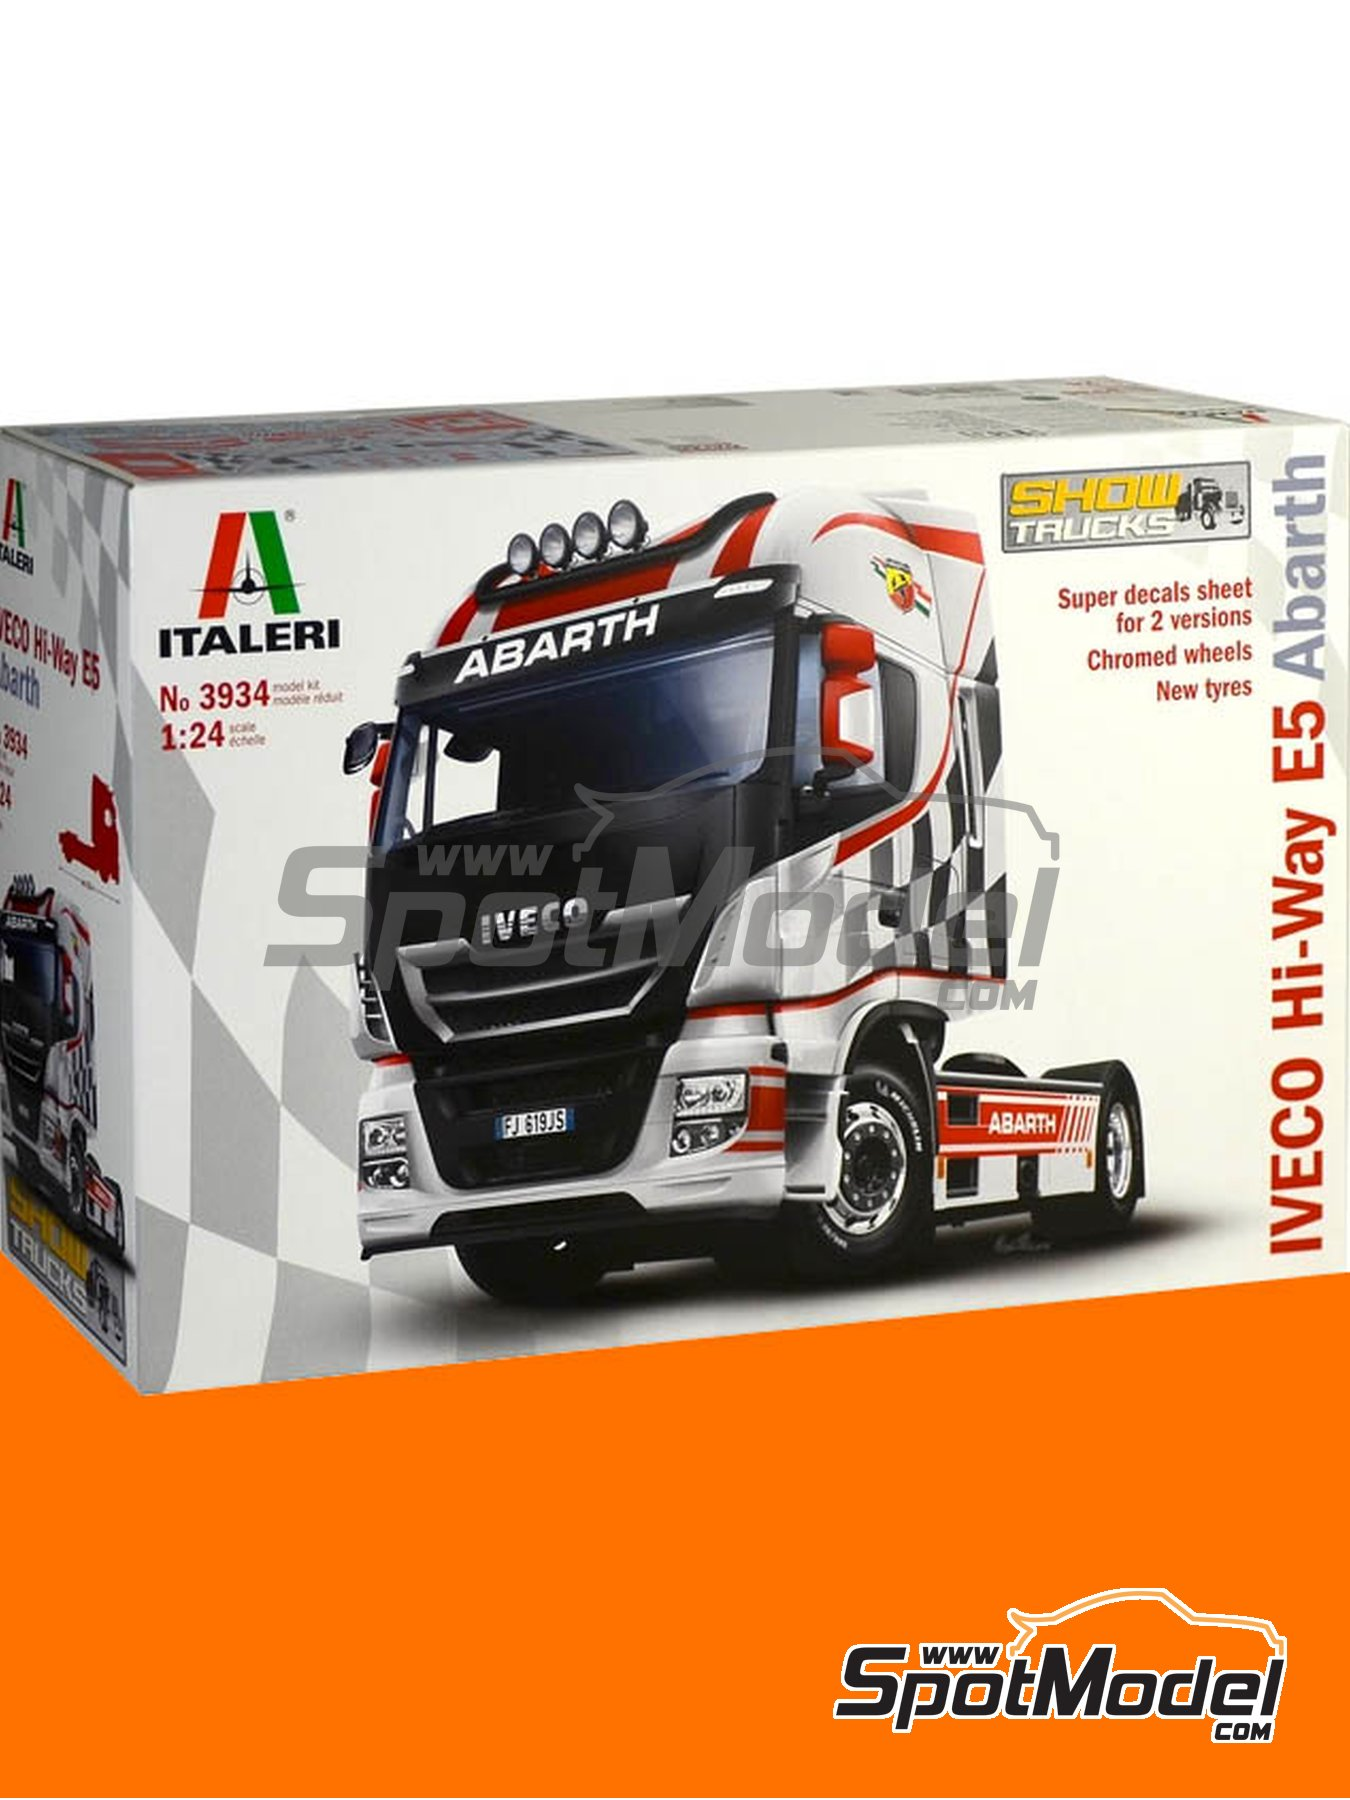 Iveco Stralis 560 Hi-Way Euro 5 Abarth | Model truck kit in 1/24 scale manufactured by Italeri (ref.3934) image